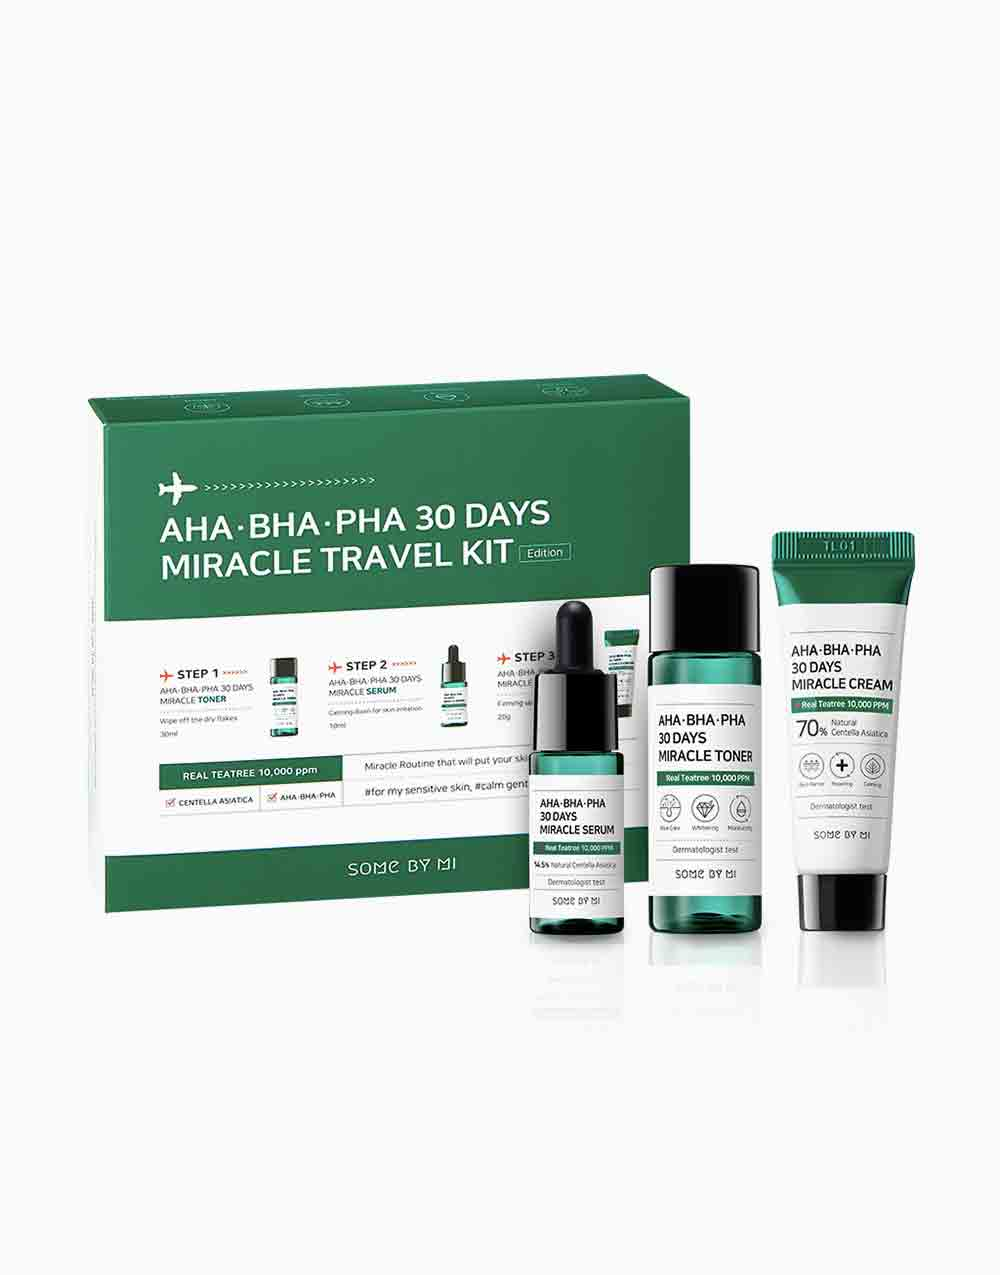 AHA BHA PHA 30 Days Miracle Travel Kit by Some By Mi